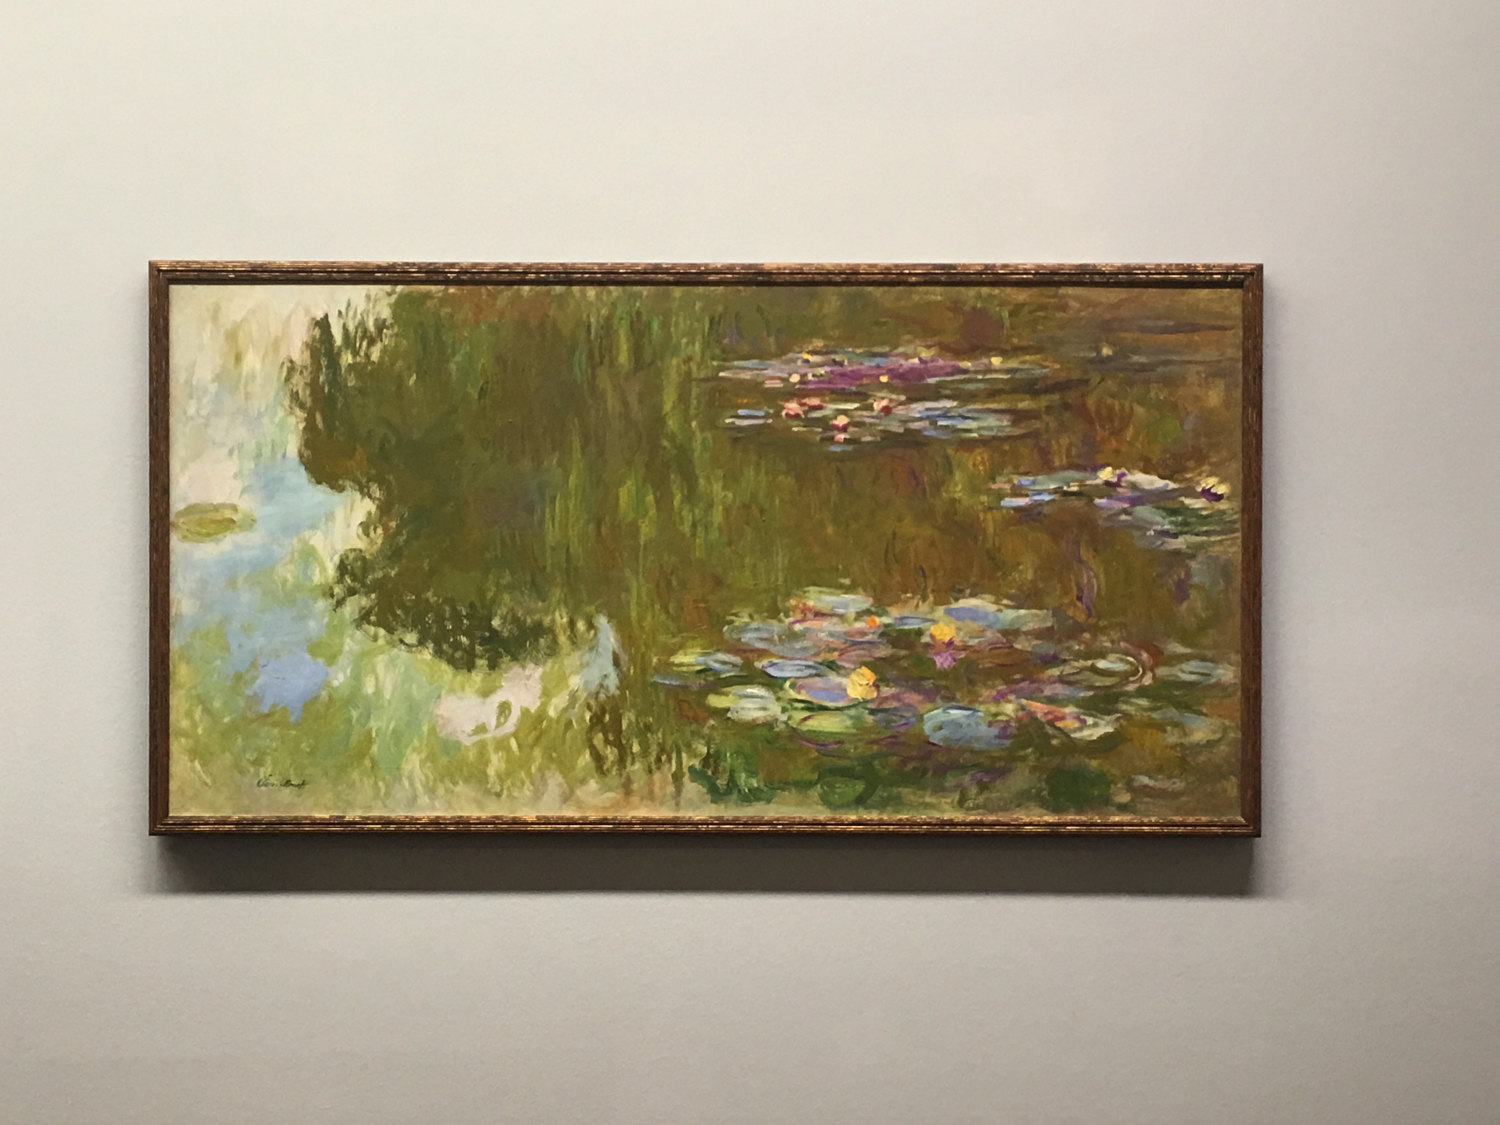 Claude Monet, The Water Lily Pond, 1917-1919, Collezione Batliner, Albertina Museum, Vienna